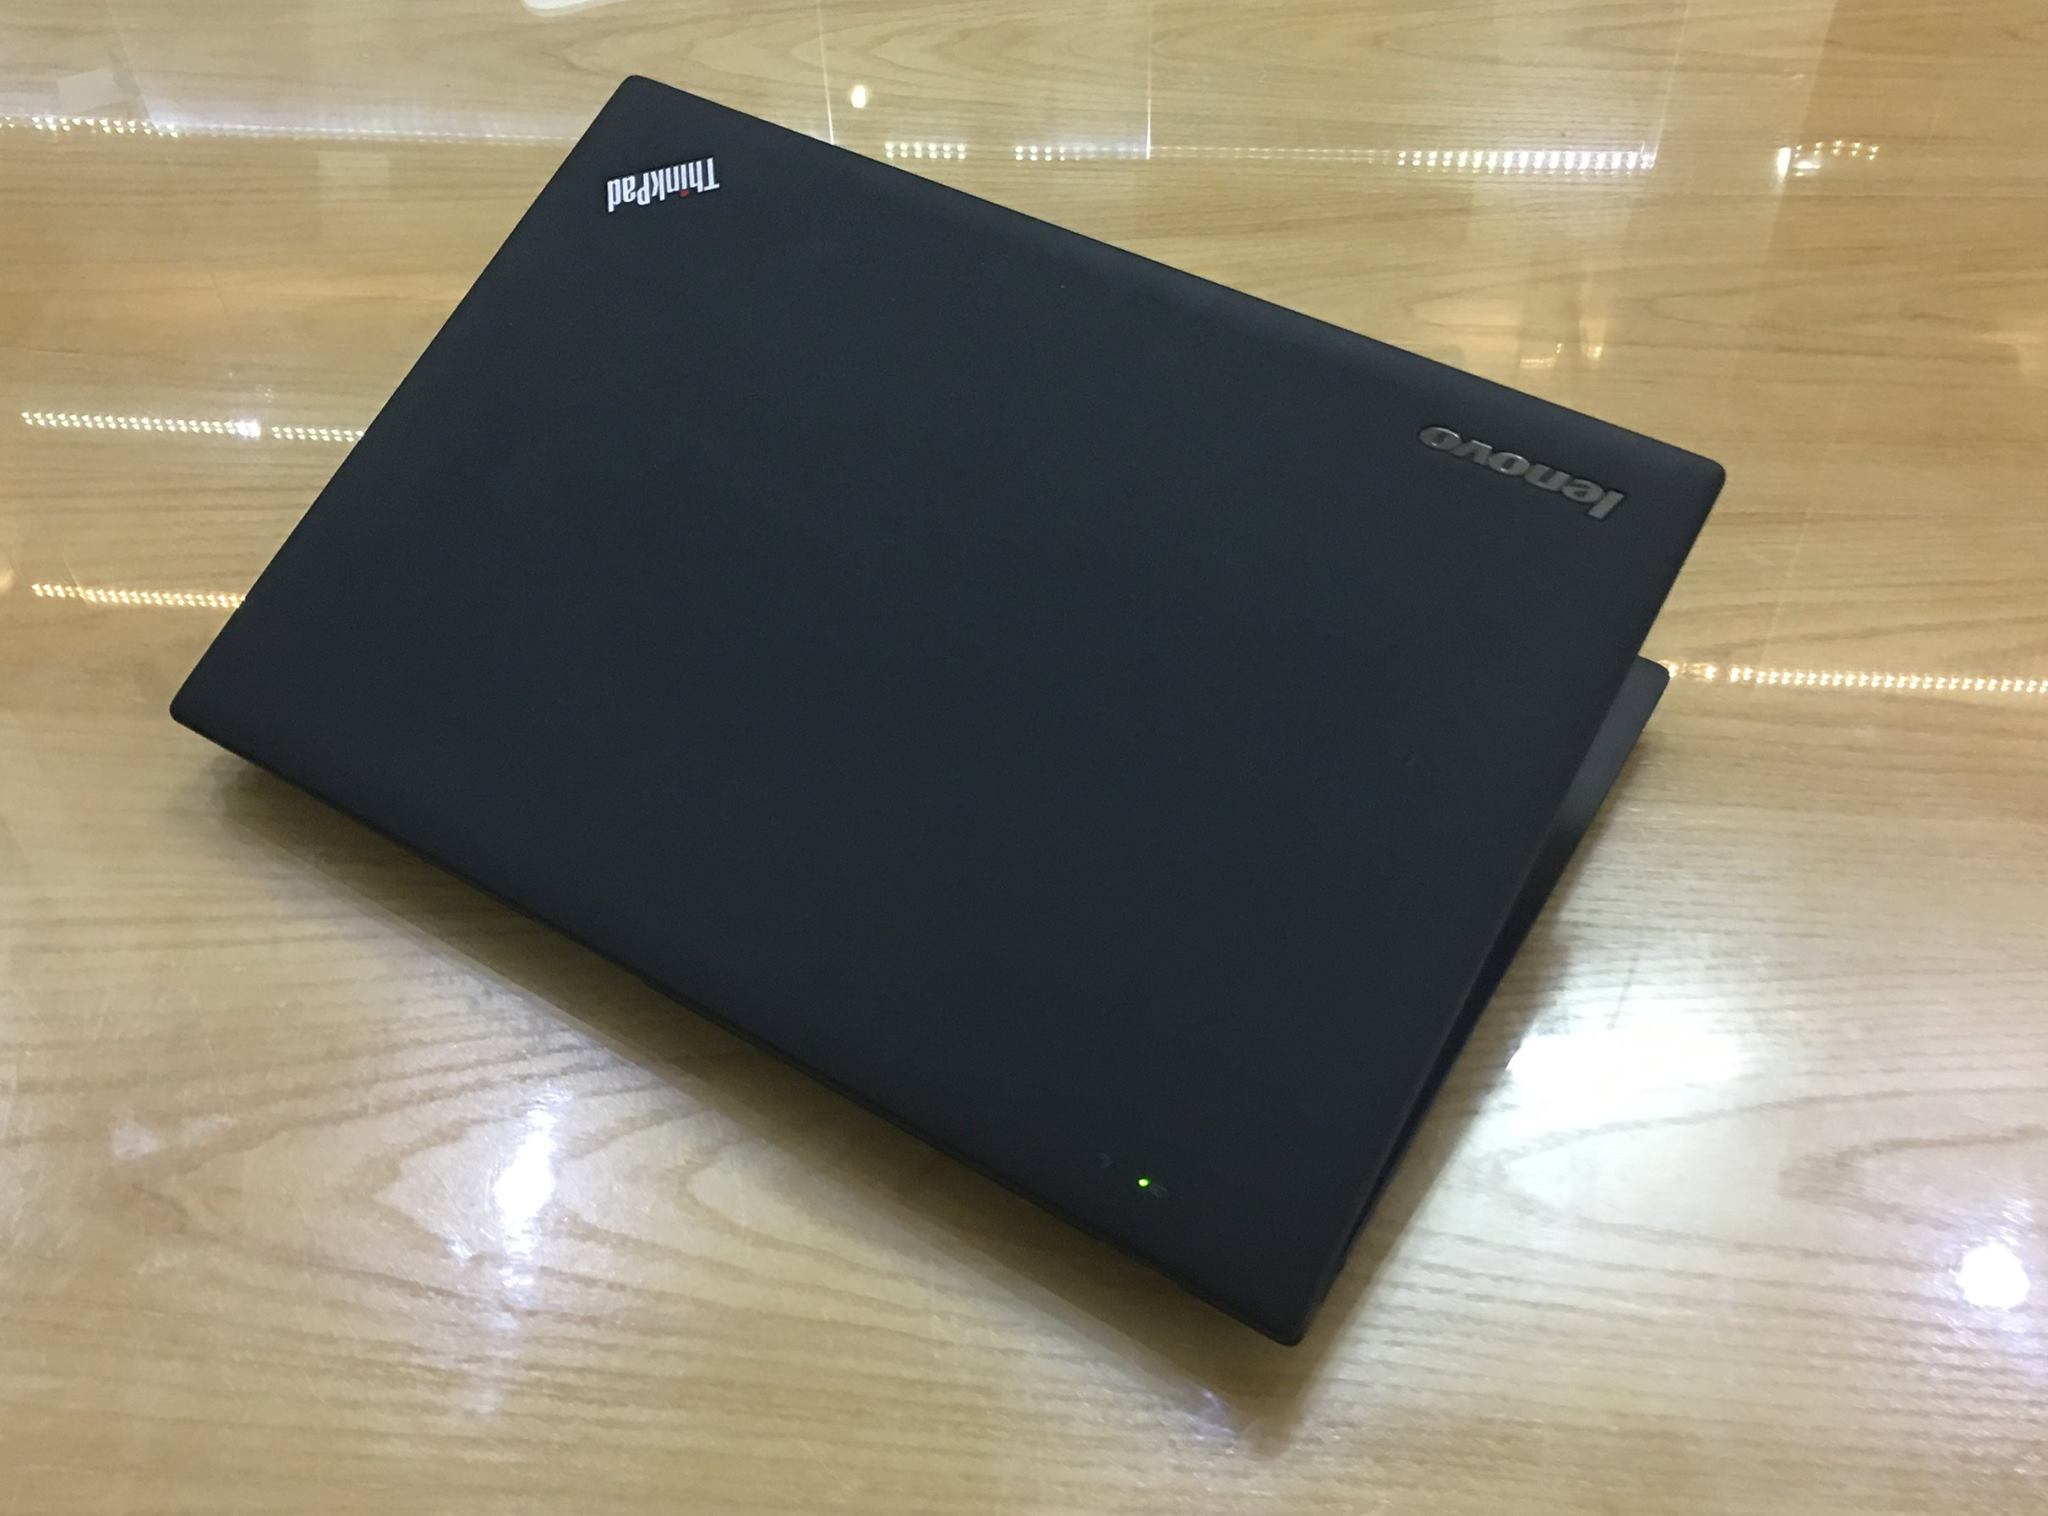 Lenovo ThinkPad X1 Carbon C3 i5.jpg